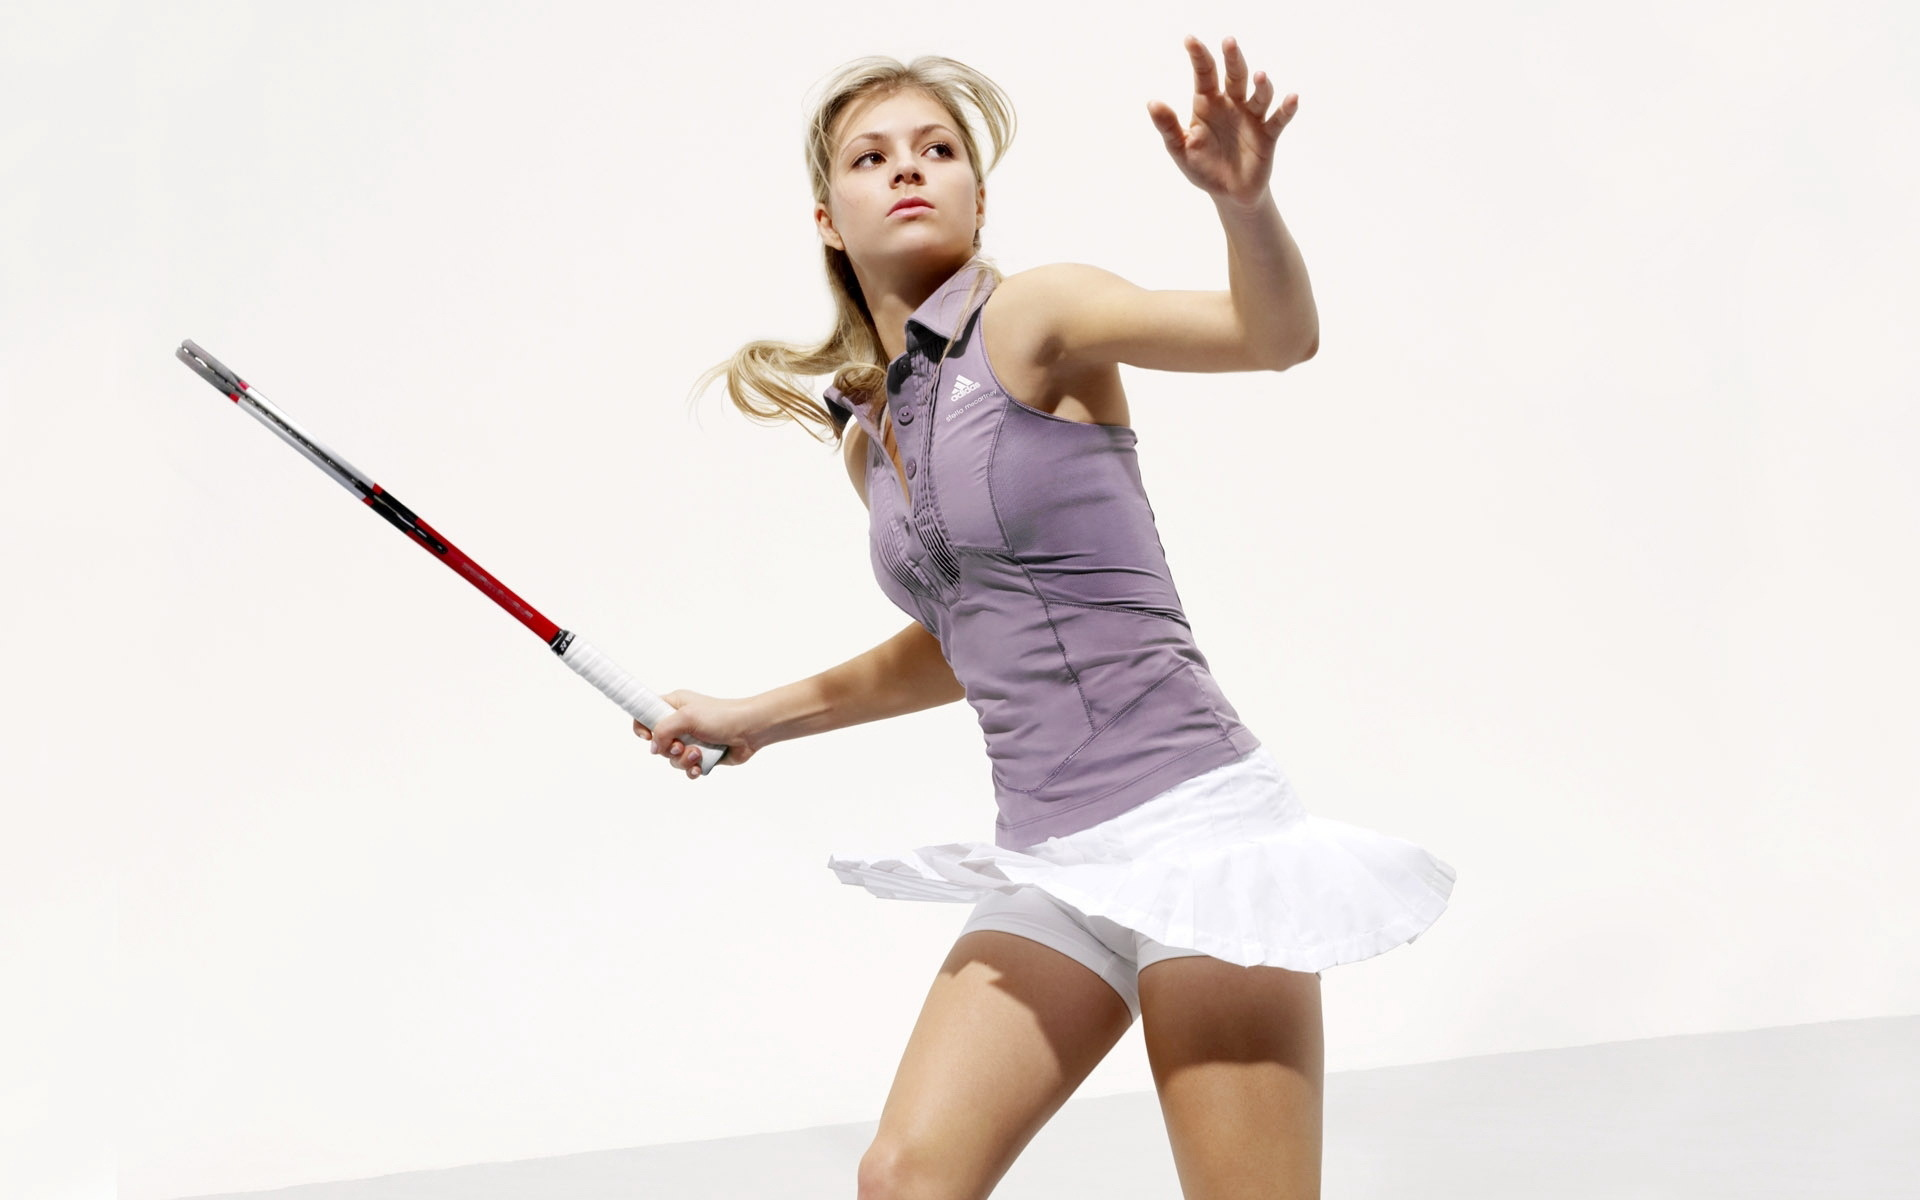 Sport Wallpaper Women: Cute Maria Kirilenko (Tennis Player) Wallpapers